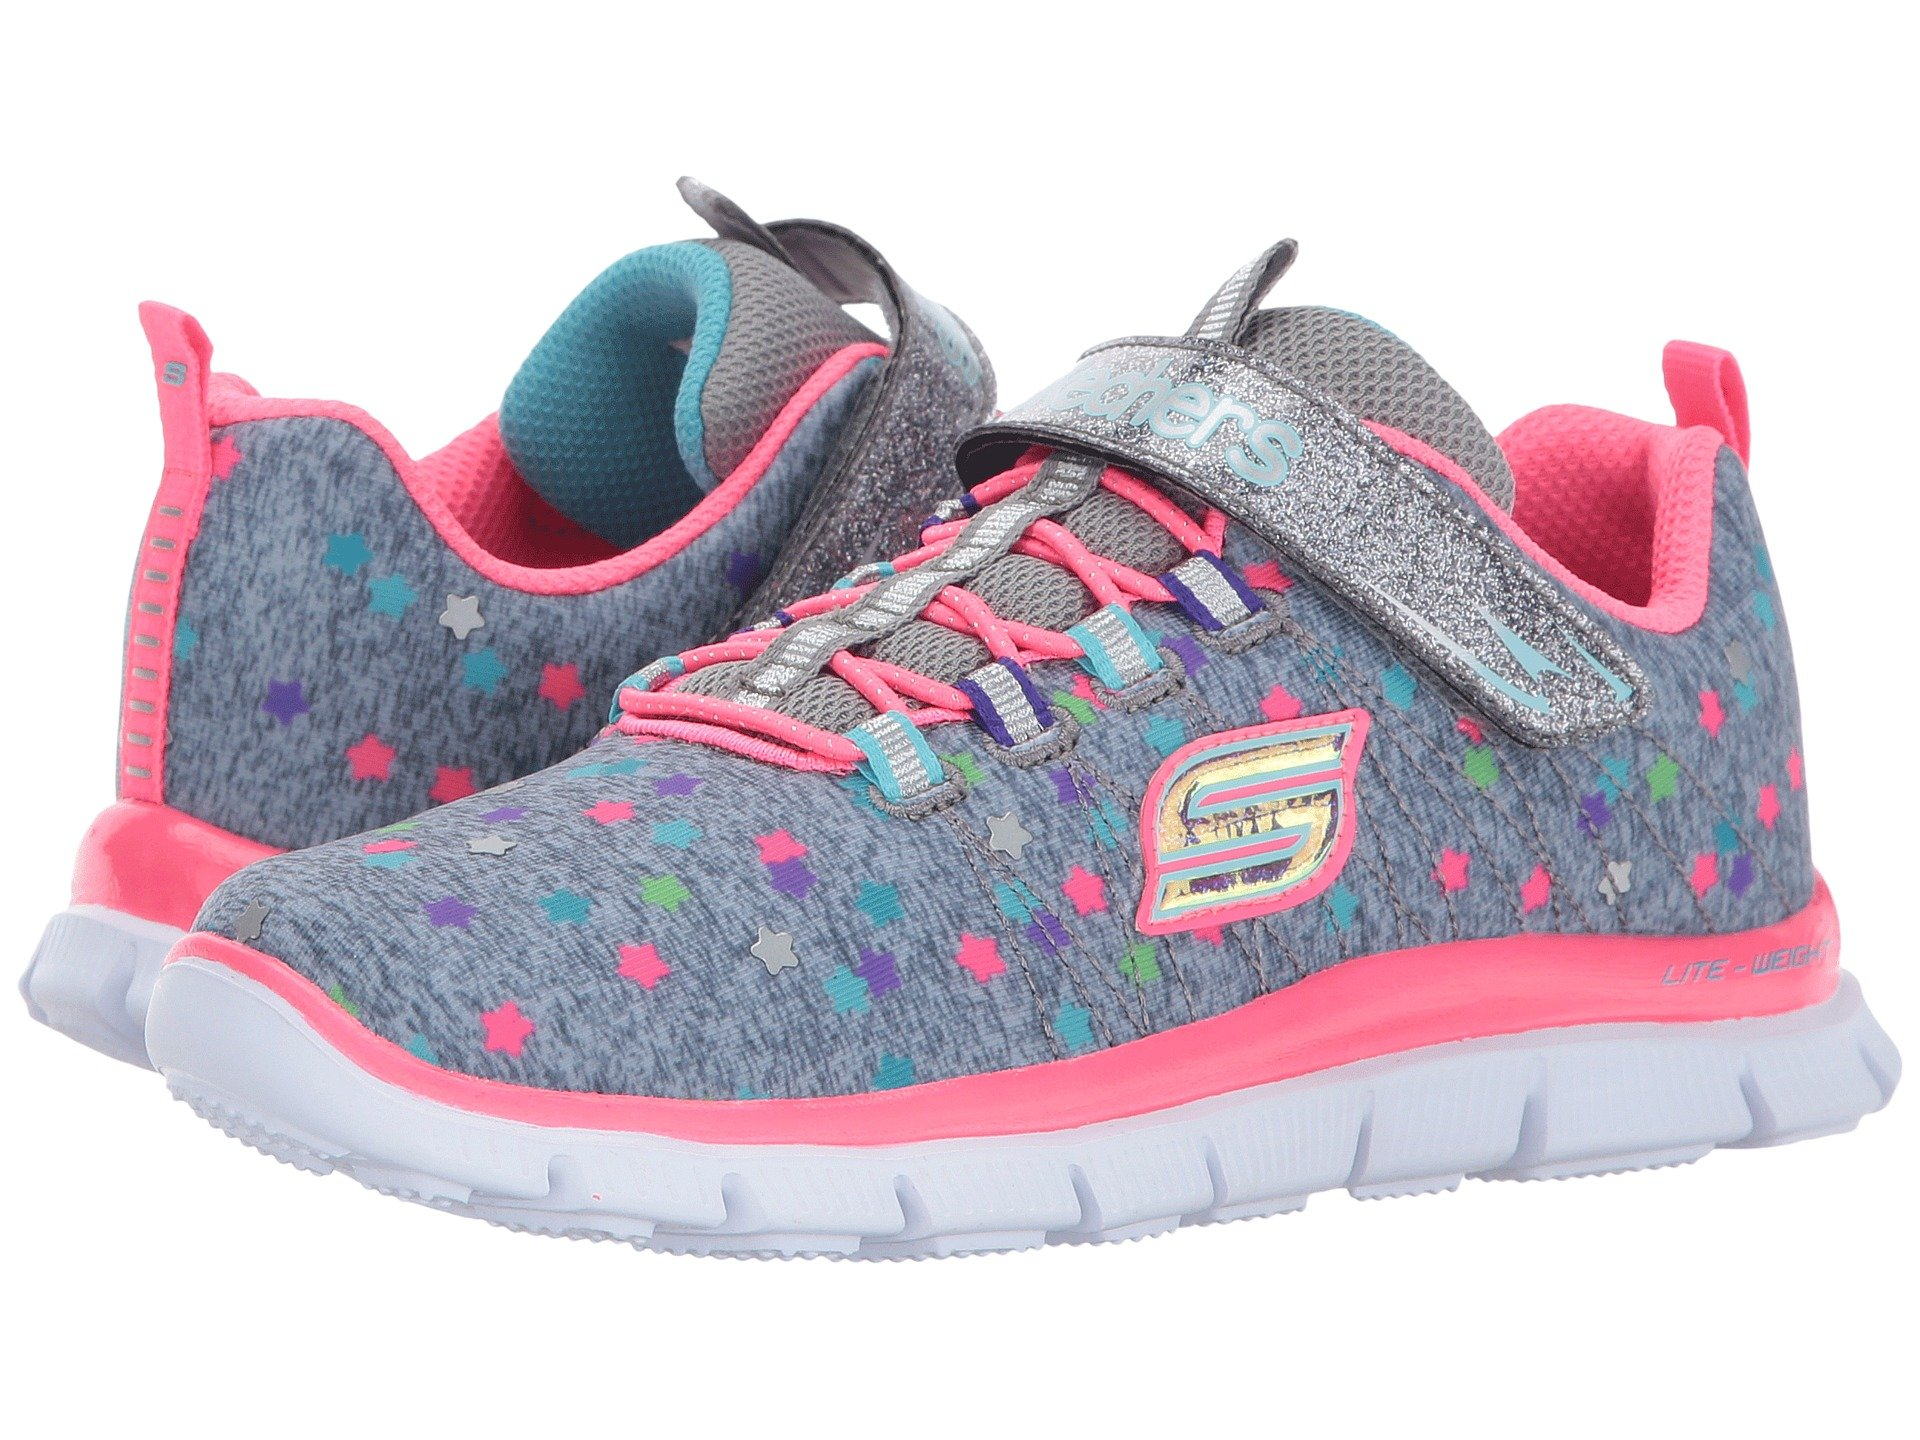 SKECHERS KIDS Skech Appeal 81814L (Little Kid/Big Kid) At Zappos.com